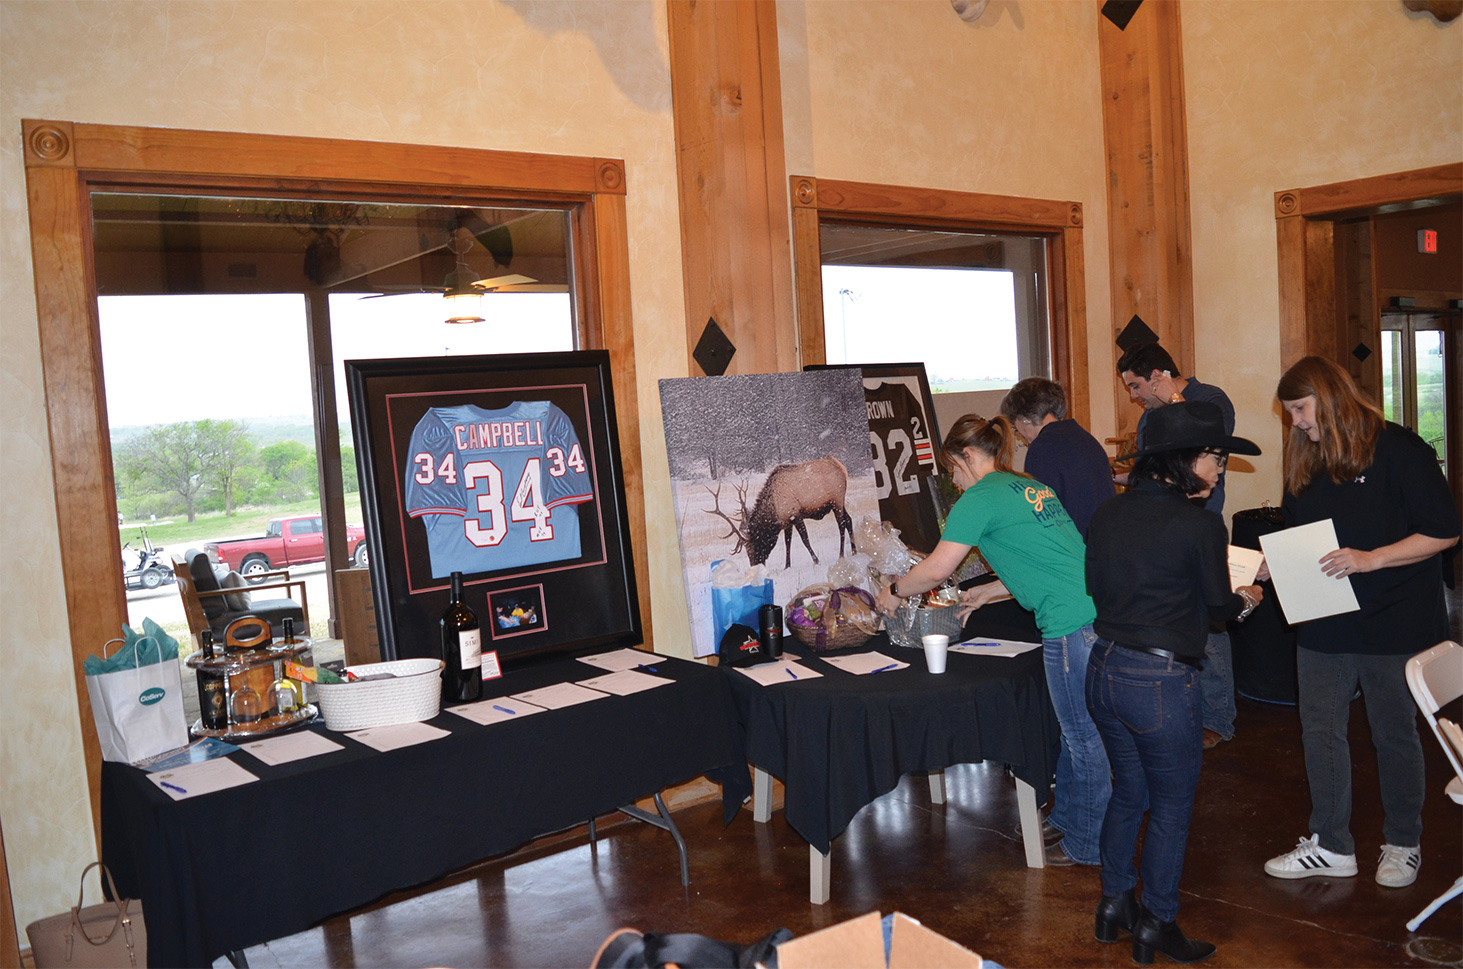 The Silent Auction displays for the event.